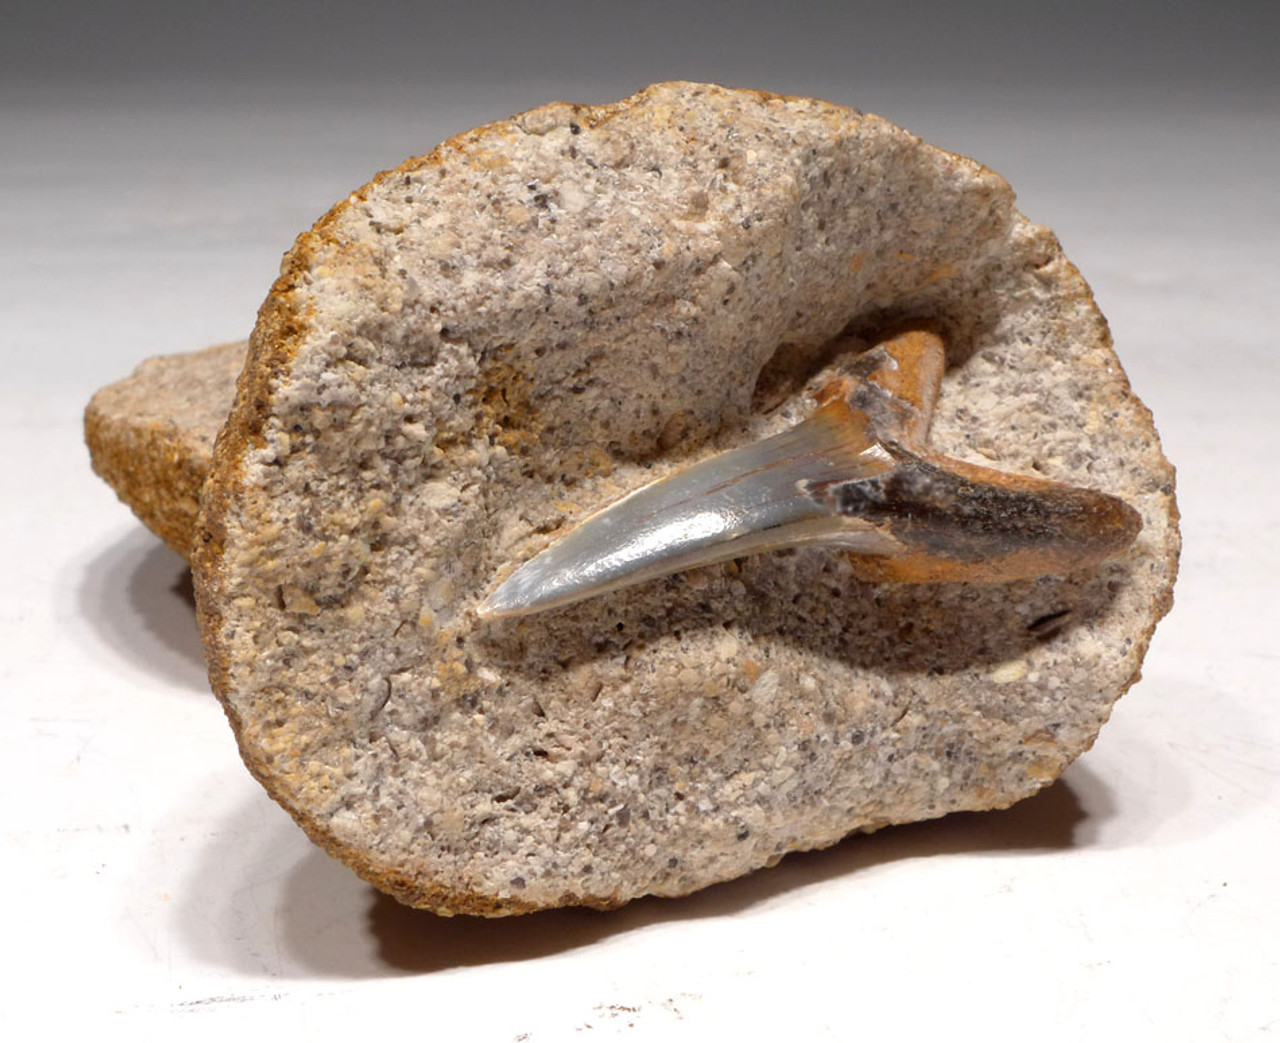 SHX036 - FIRST TIME SEEN MASSIVE   UNBROKEN OLIGOCENE SAND TIGER FOSSIL SHARK TOOTH IN GEODE FROM GERMANY